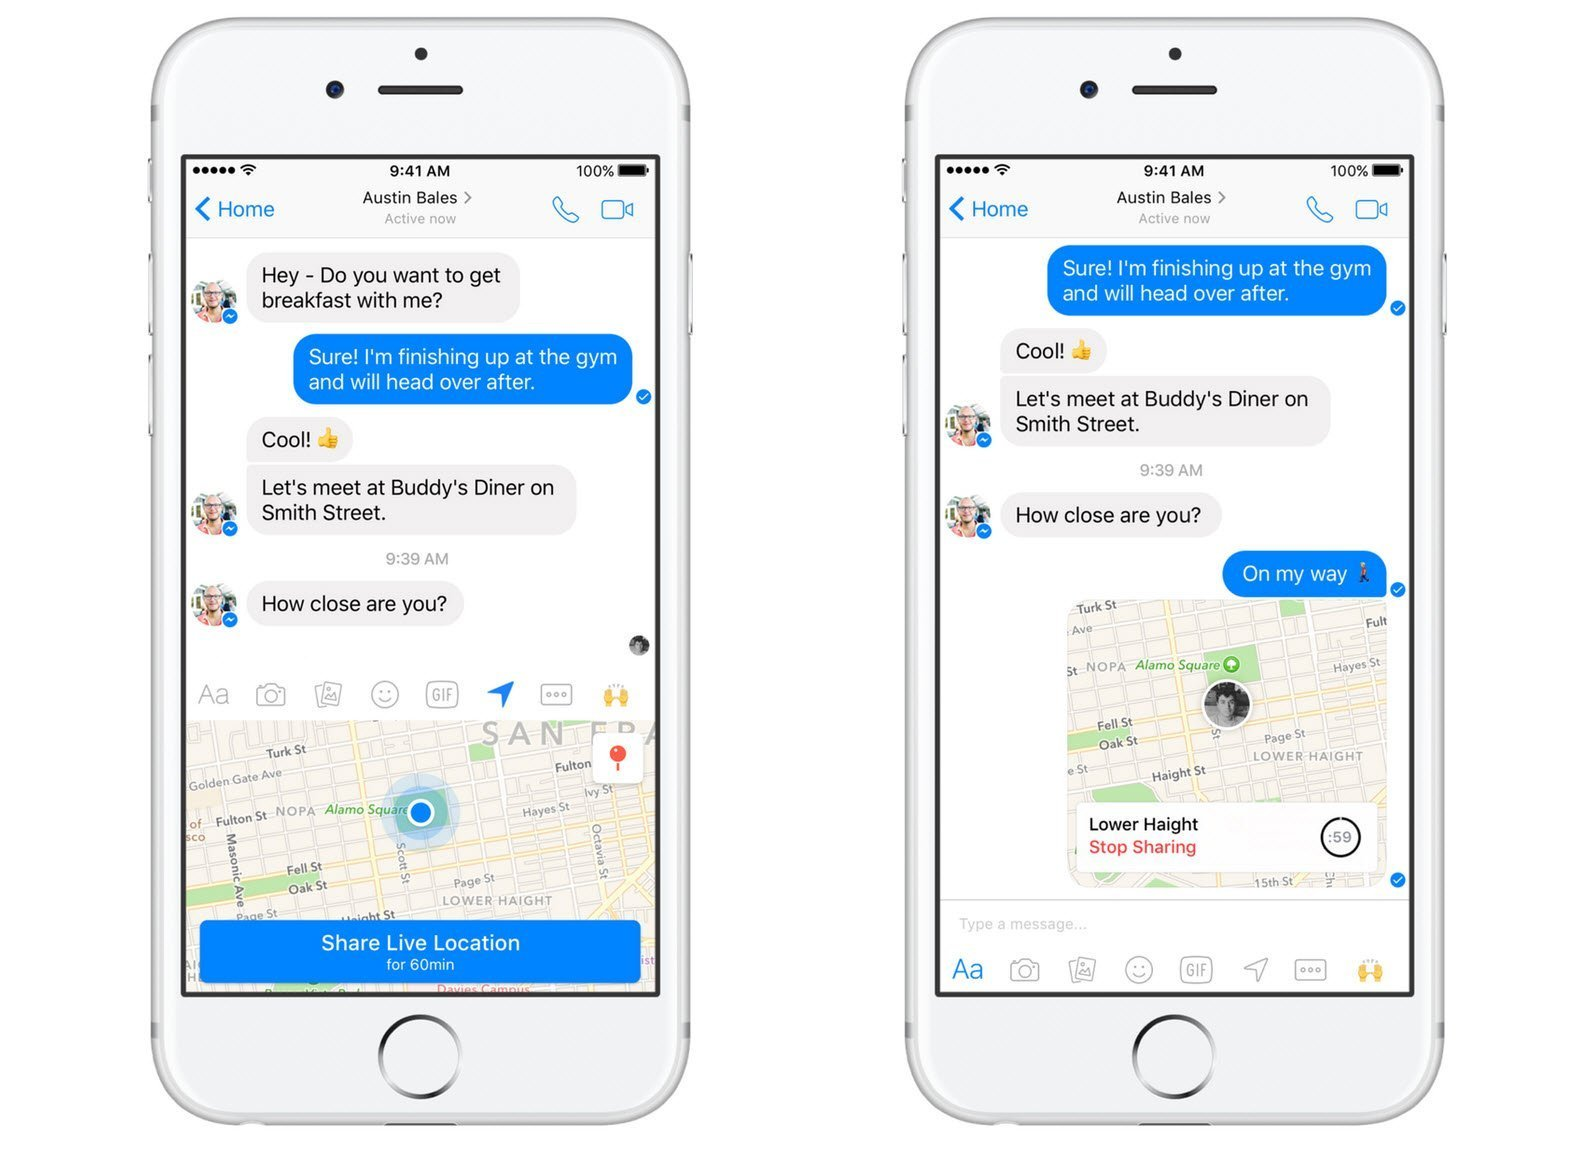 Interesting features coming to Facebook Messenger in 2019